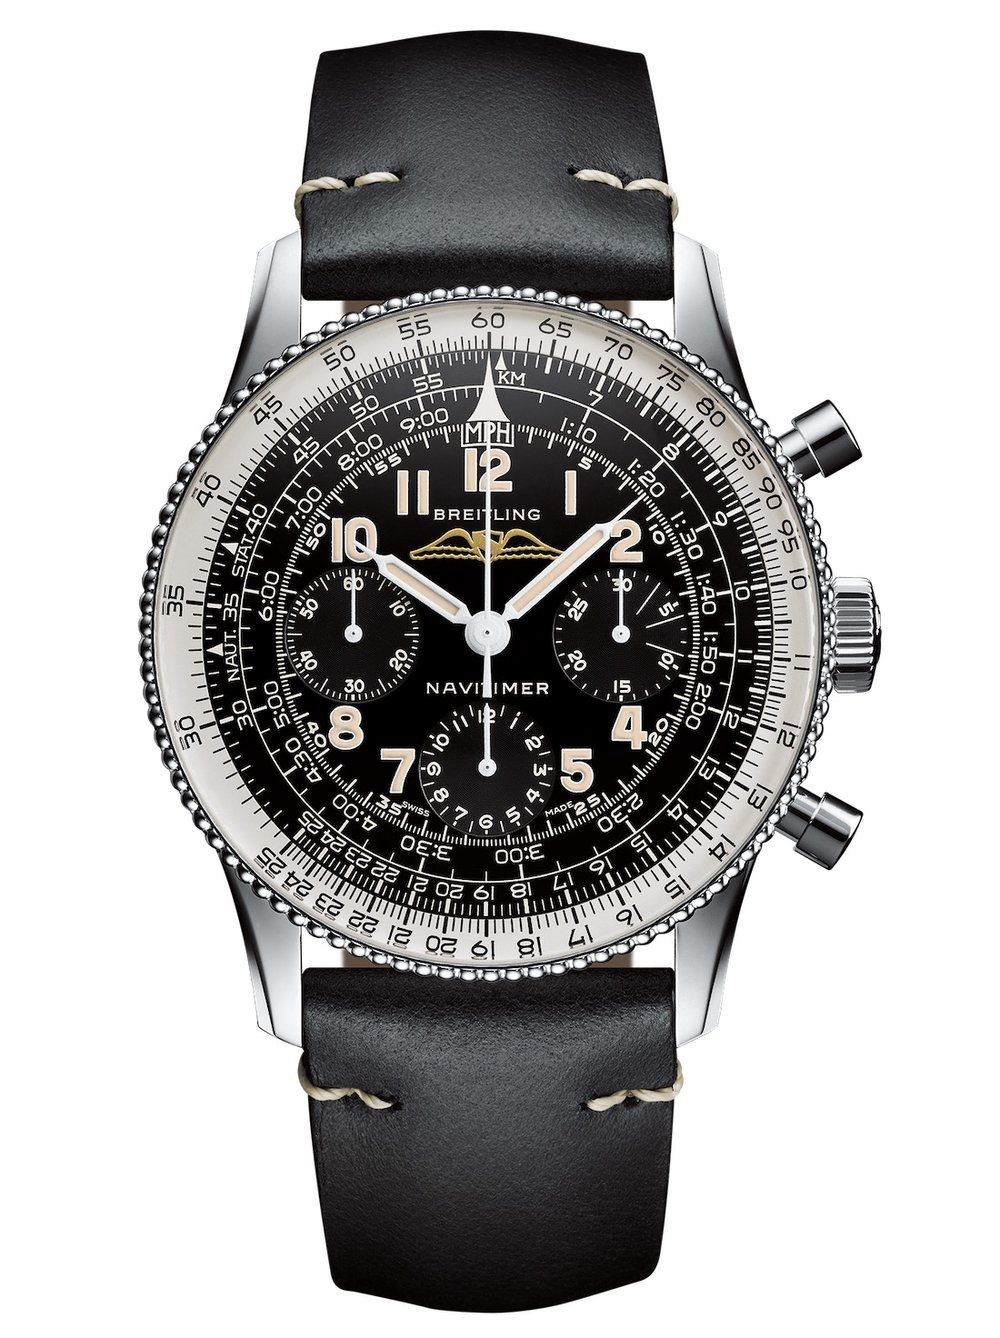 Breitling_Navitimer_Ref_806_1959_Re-Edition_21678_14-03-19.png